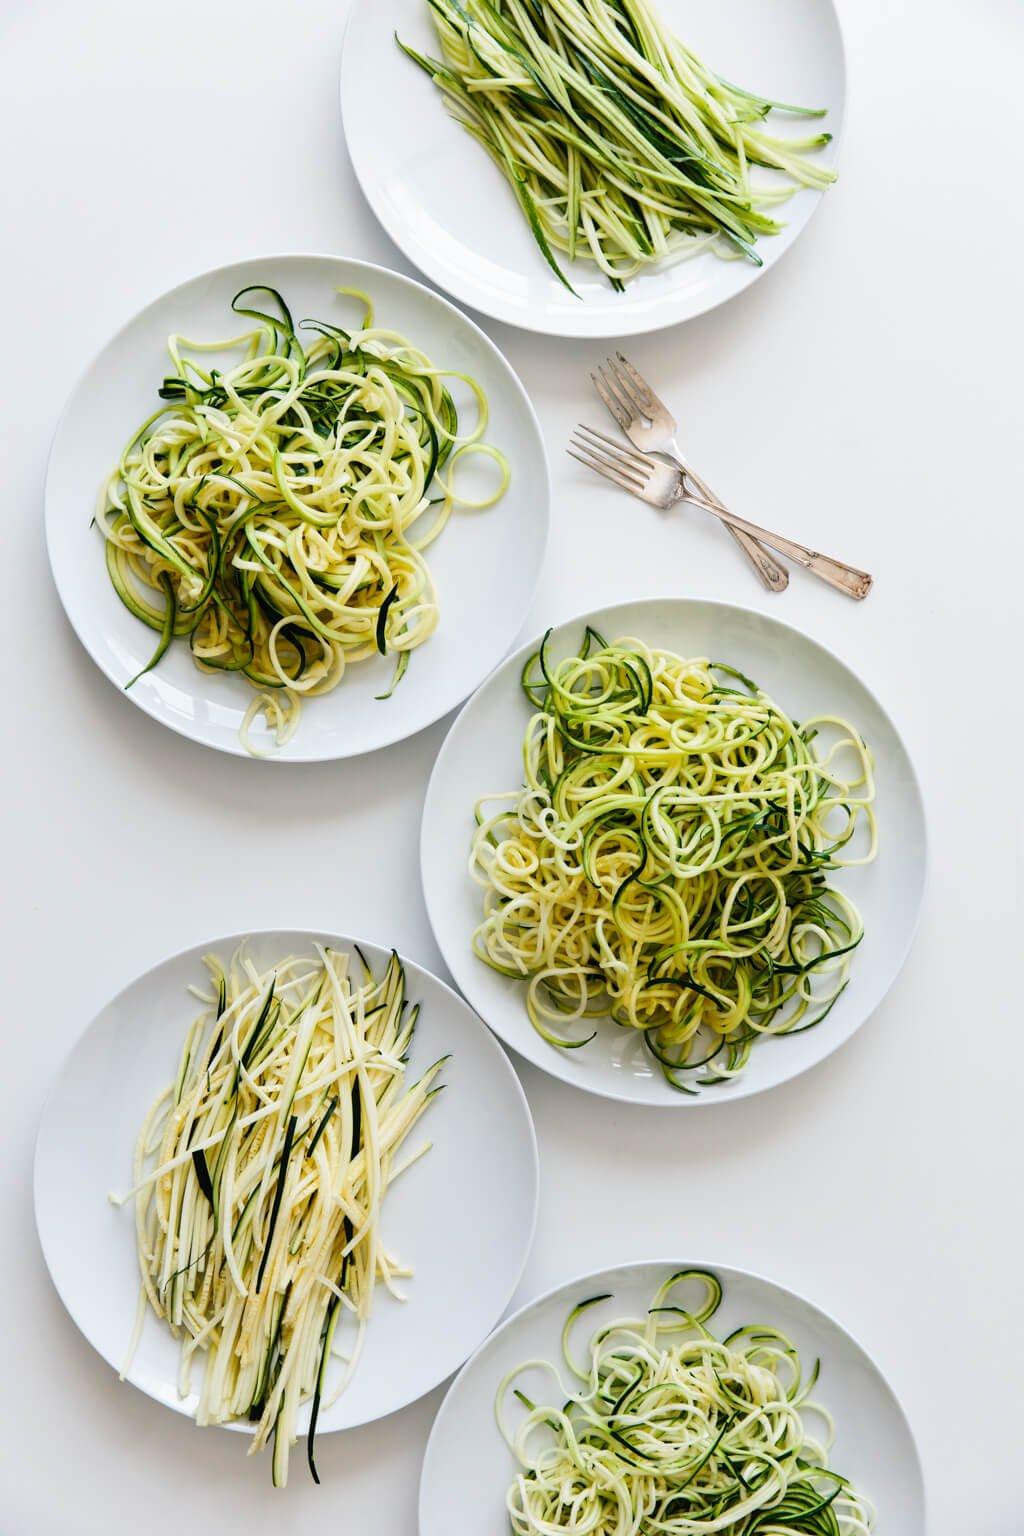 How to make and cook zucchini noodles (zoodles).